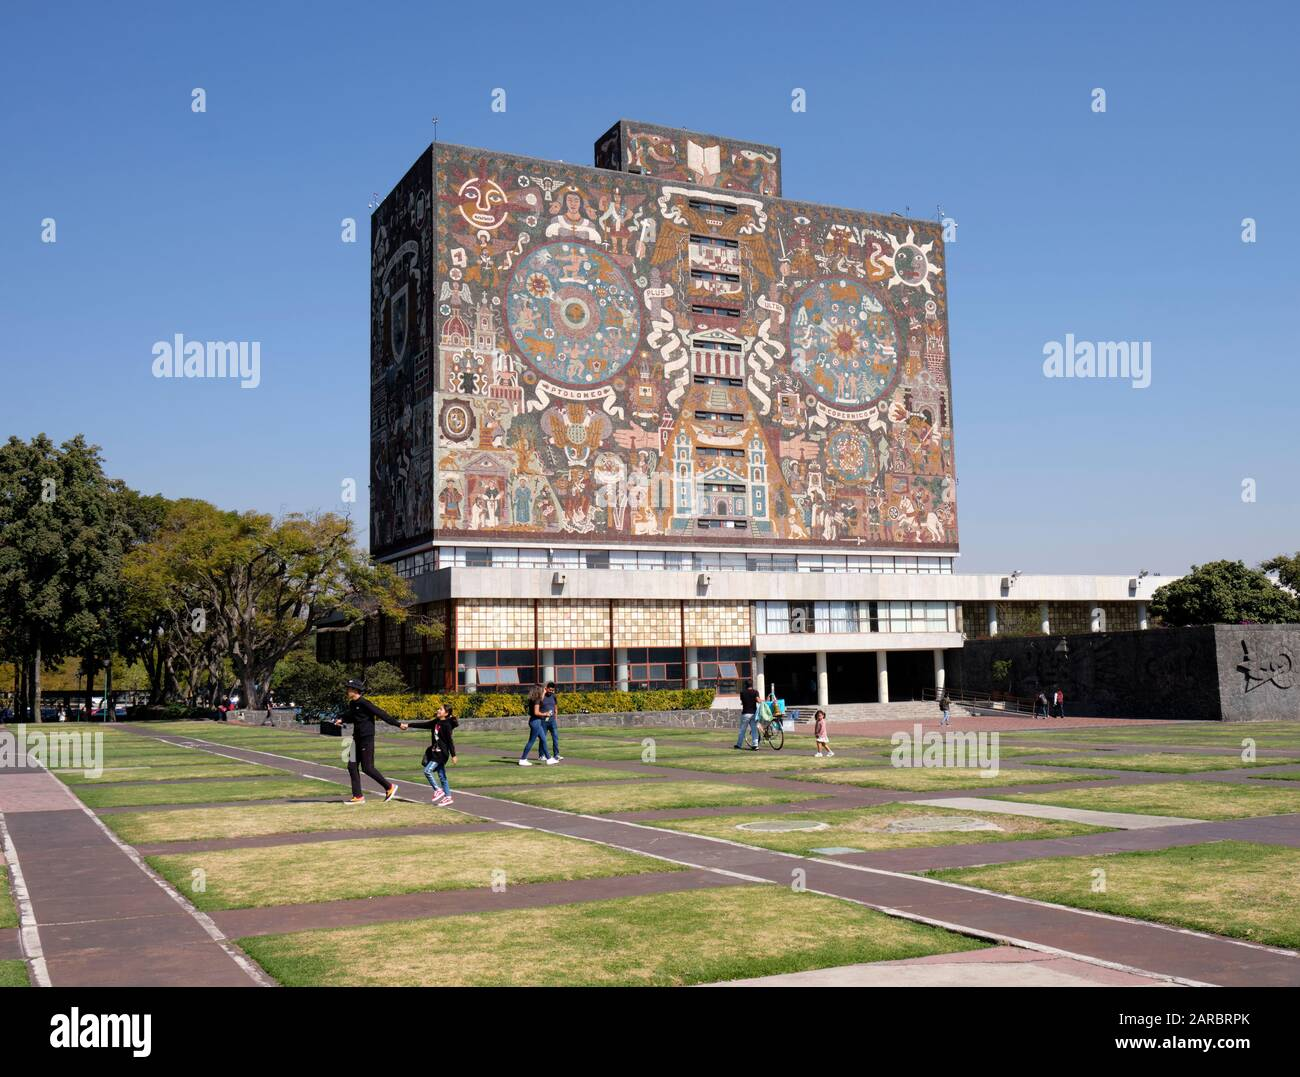 Mexico city University campus library iconic facade  created by the Mexican artist Juan O'Gorman with people walking by Stock Photo